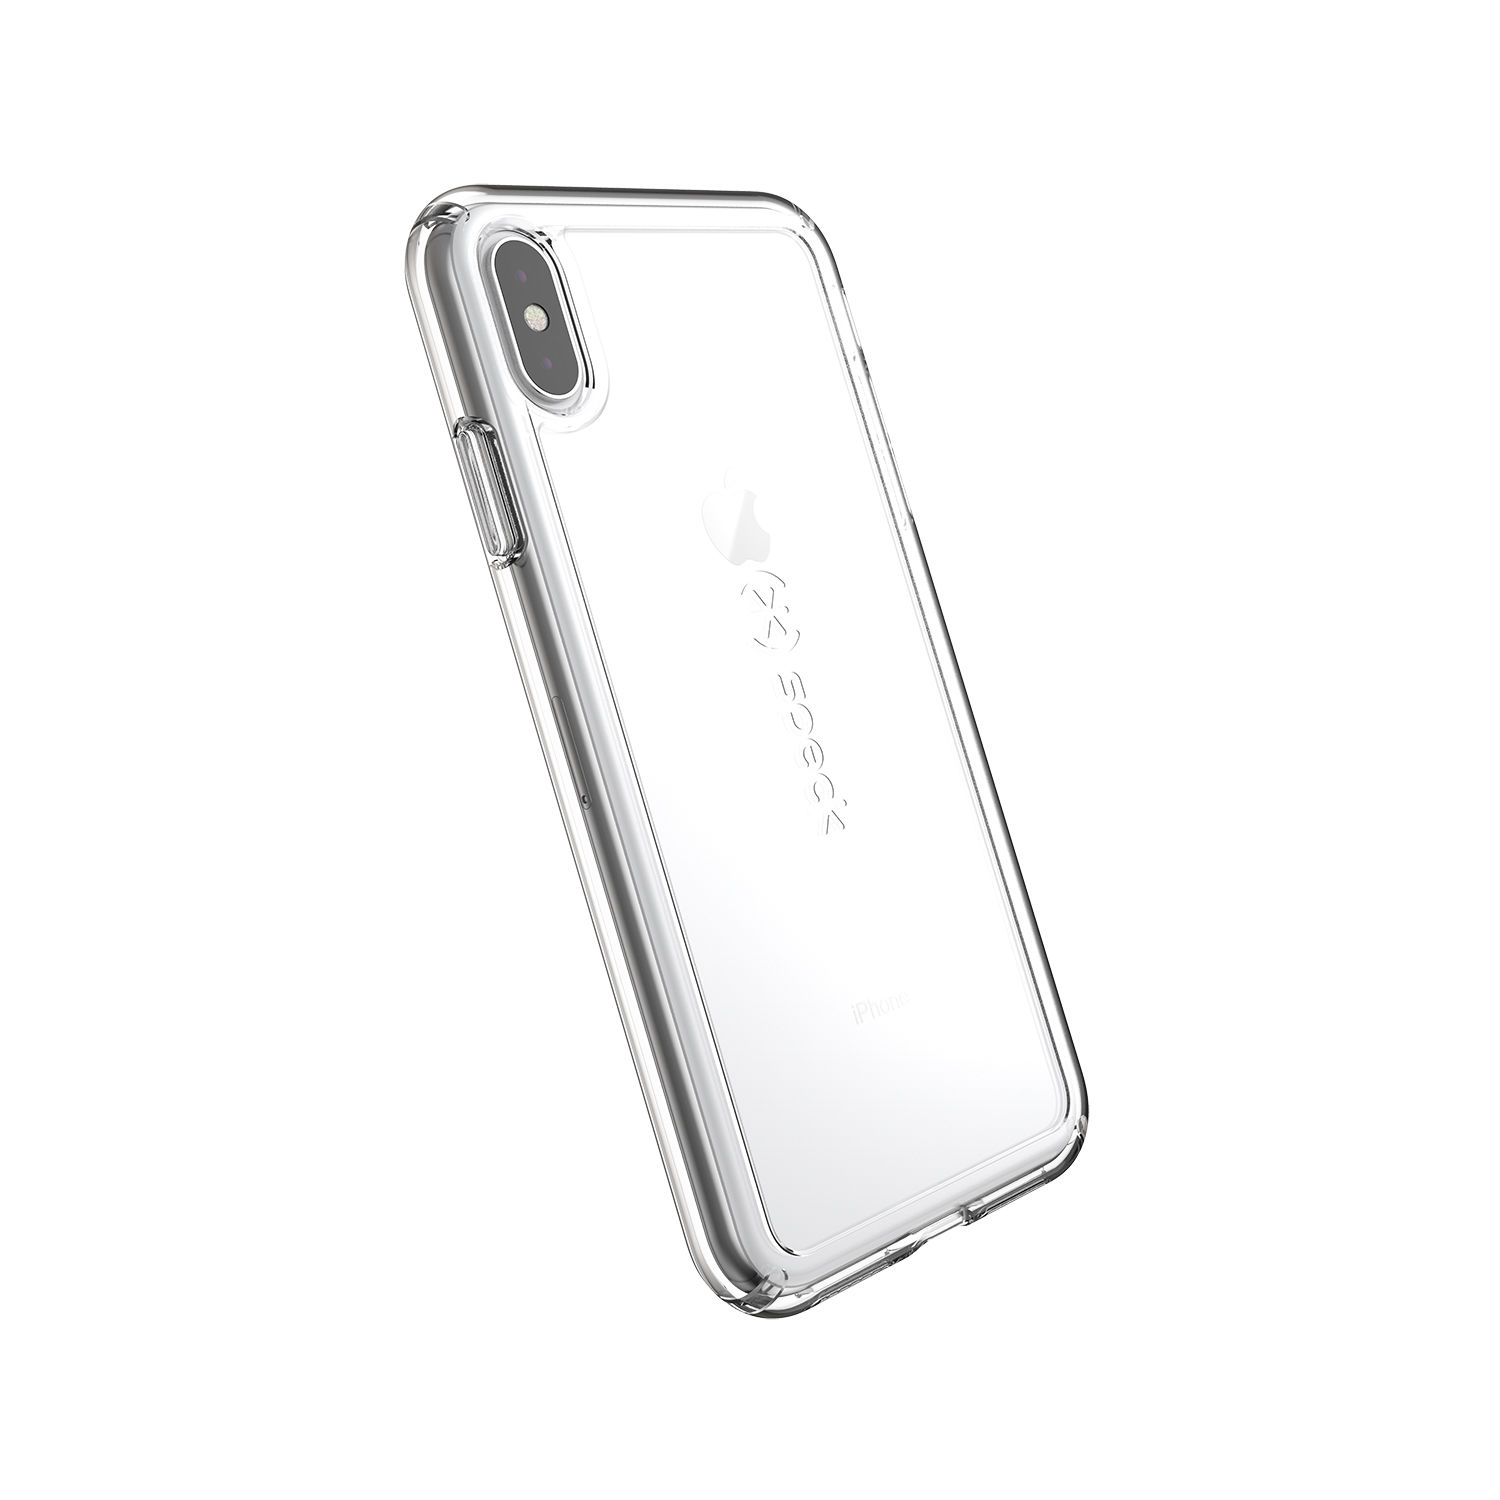 Compare prices for GemShell iPhone XS Max Cases Clear